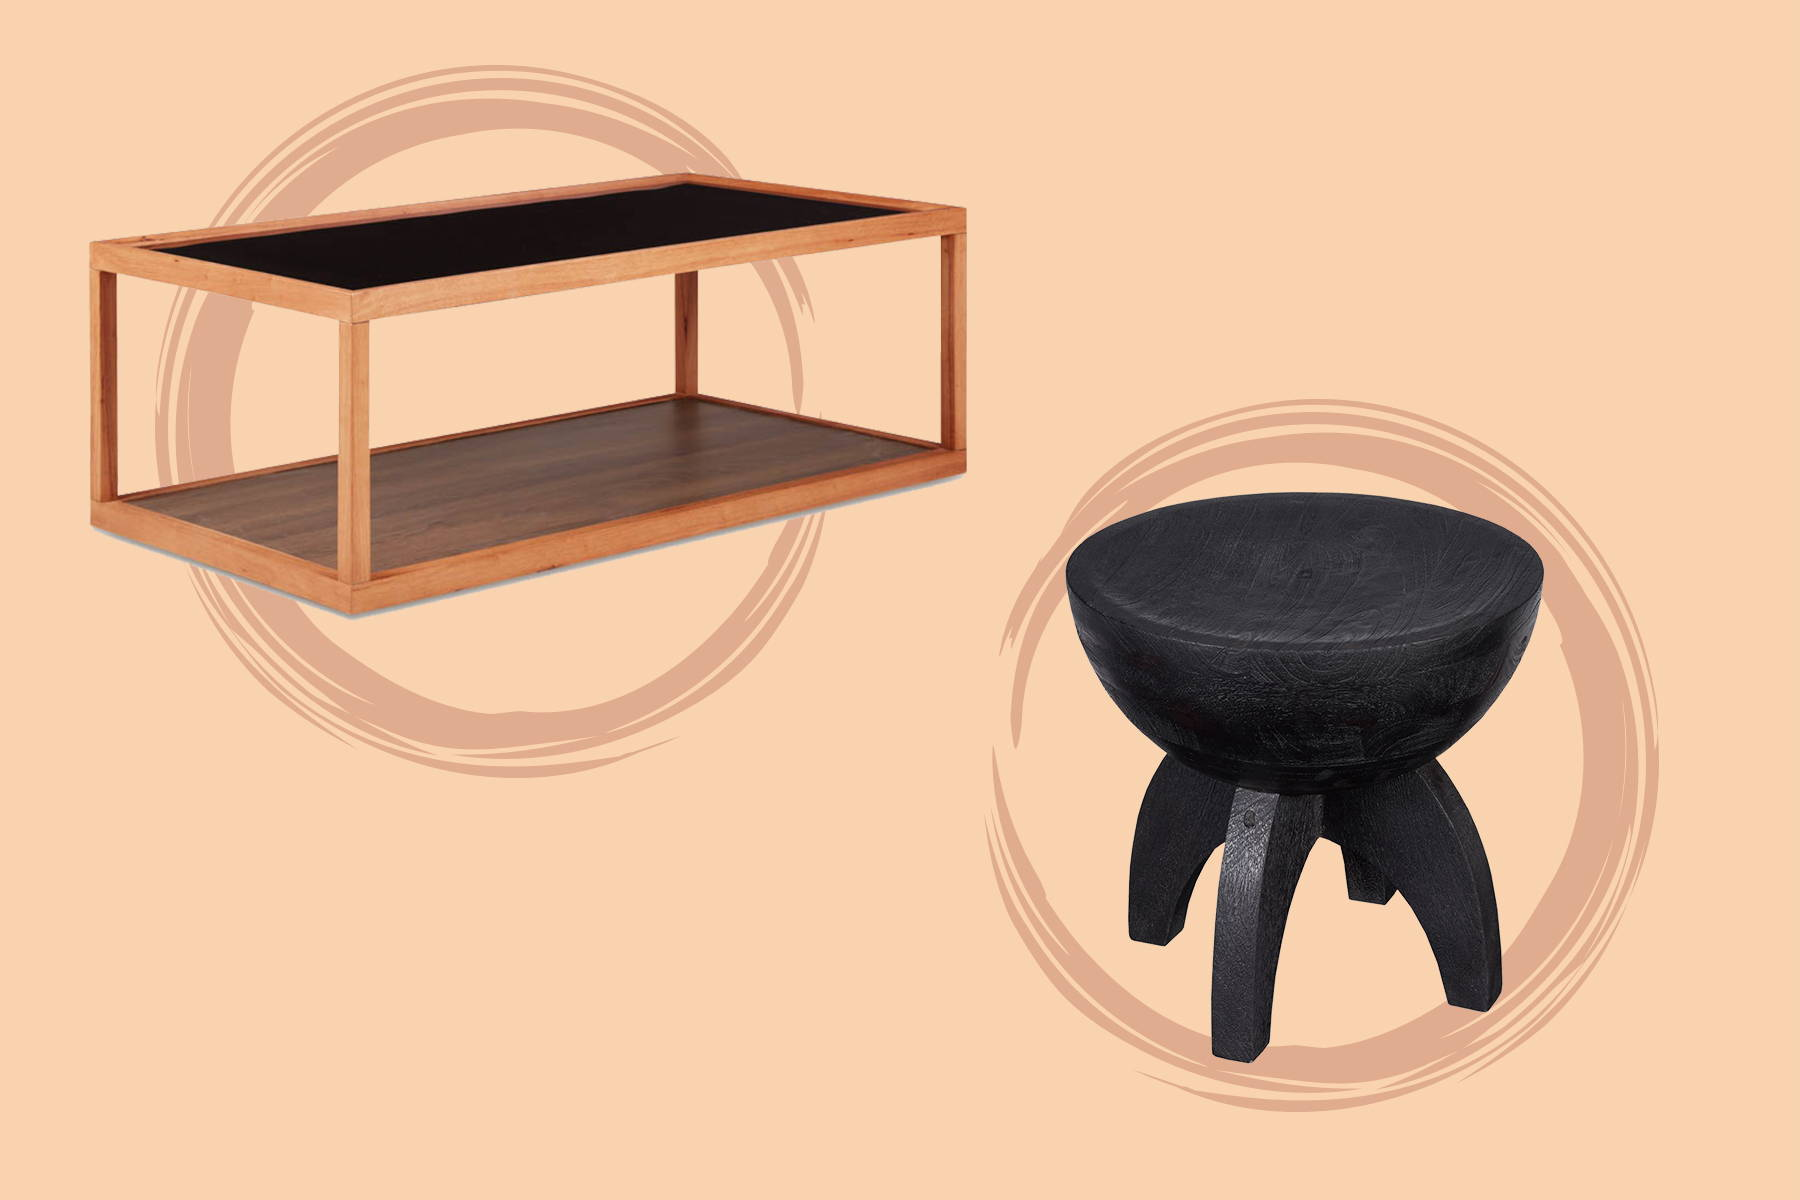 magazine table and a black solid wood side table